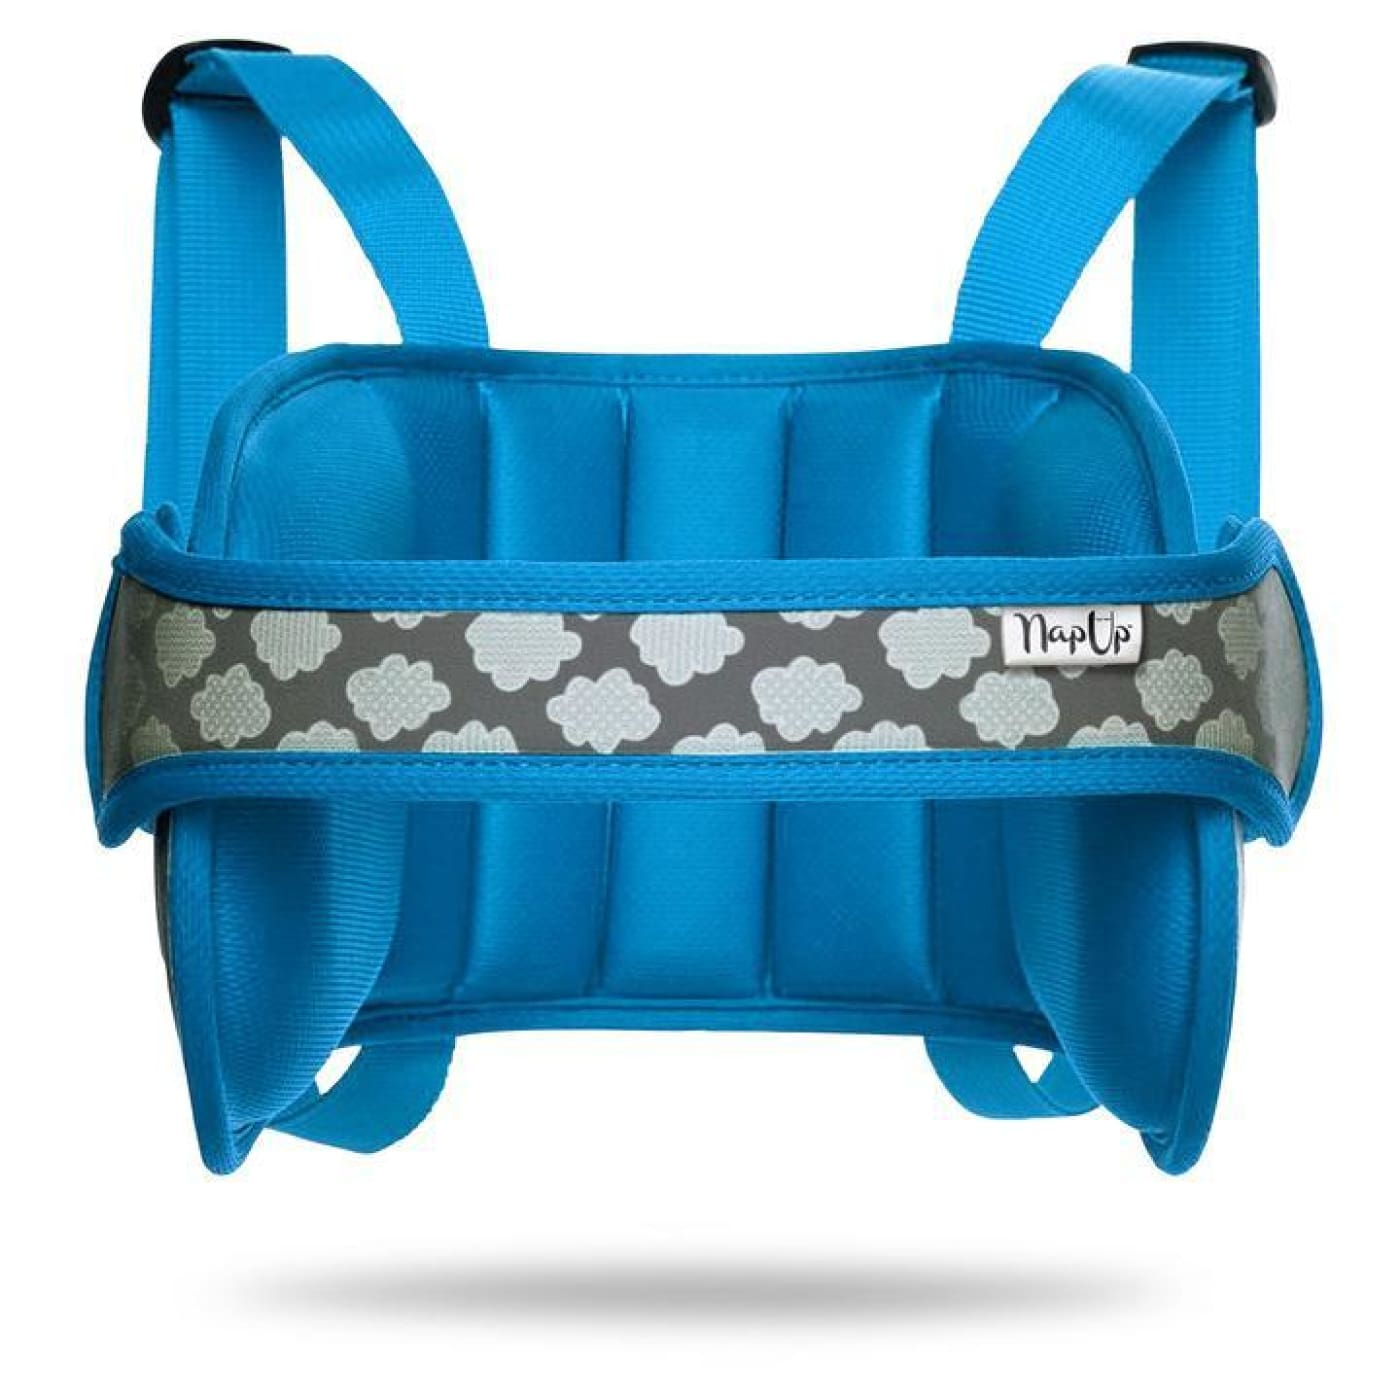 Nap Up - Aqua - CAR SEATS - HEAD SUPPORTS/HARNESS COVERS